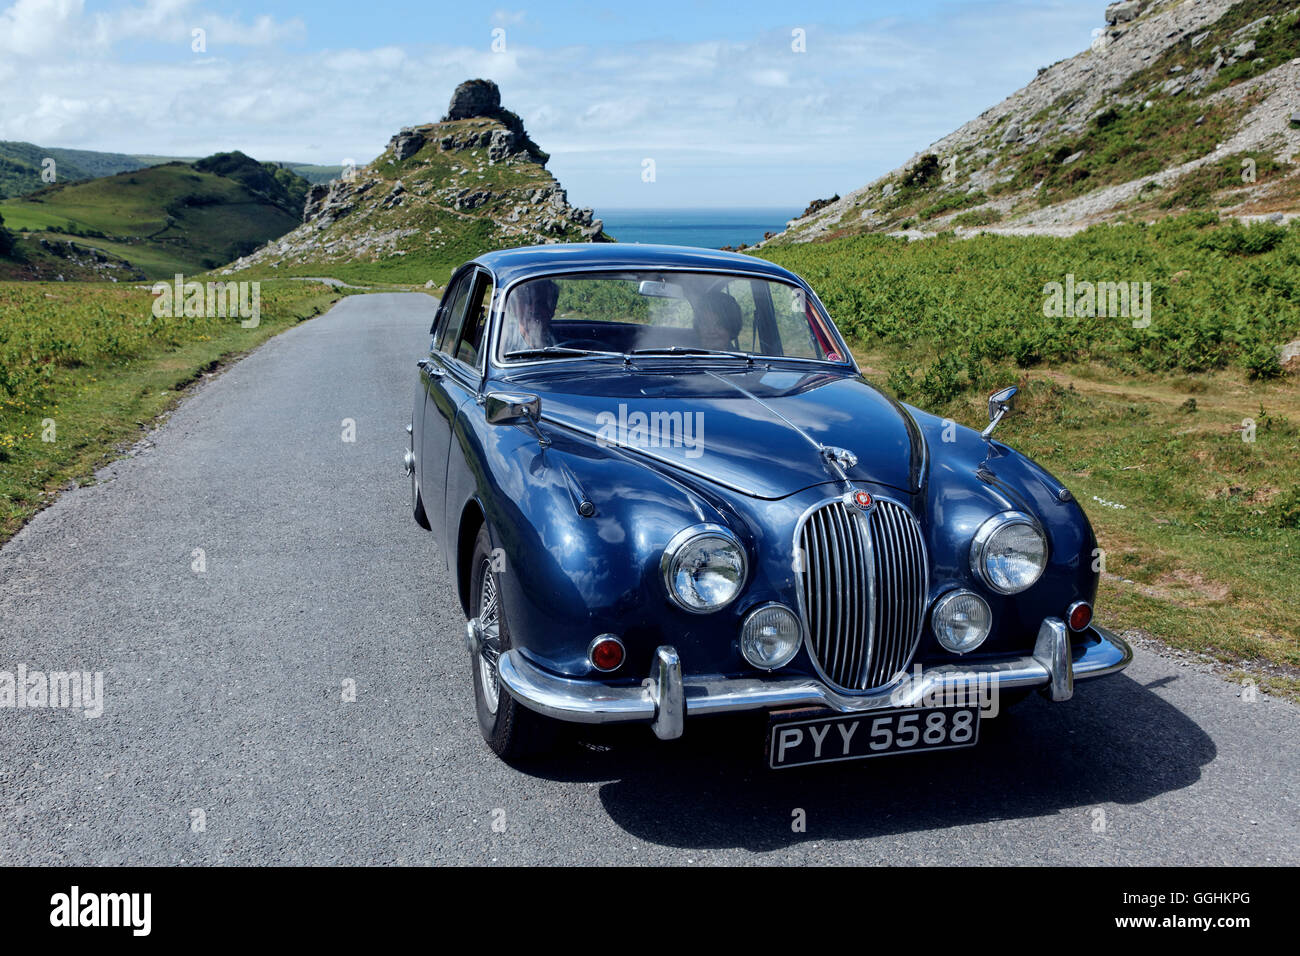 Jaguar Oldtimer on its way from Valley of the Rocks near Lynton, Devon, England, Great Britain - Stock Image